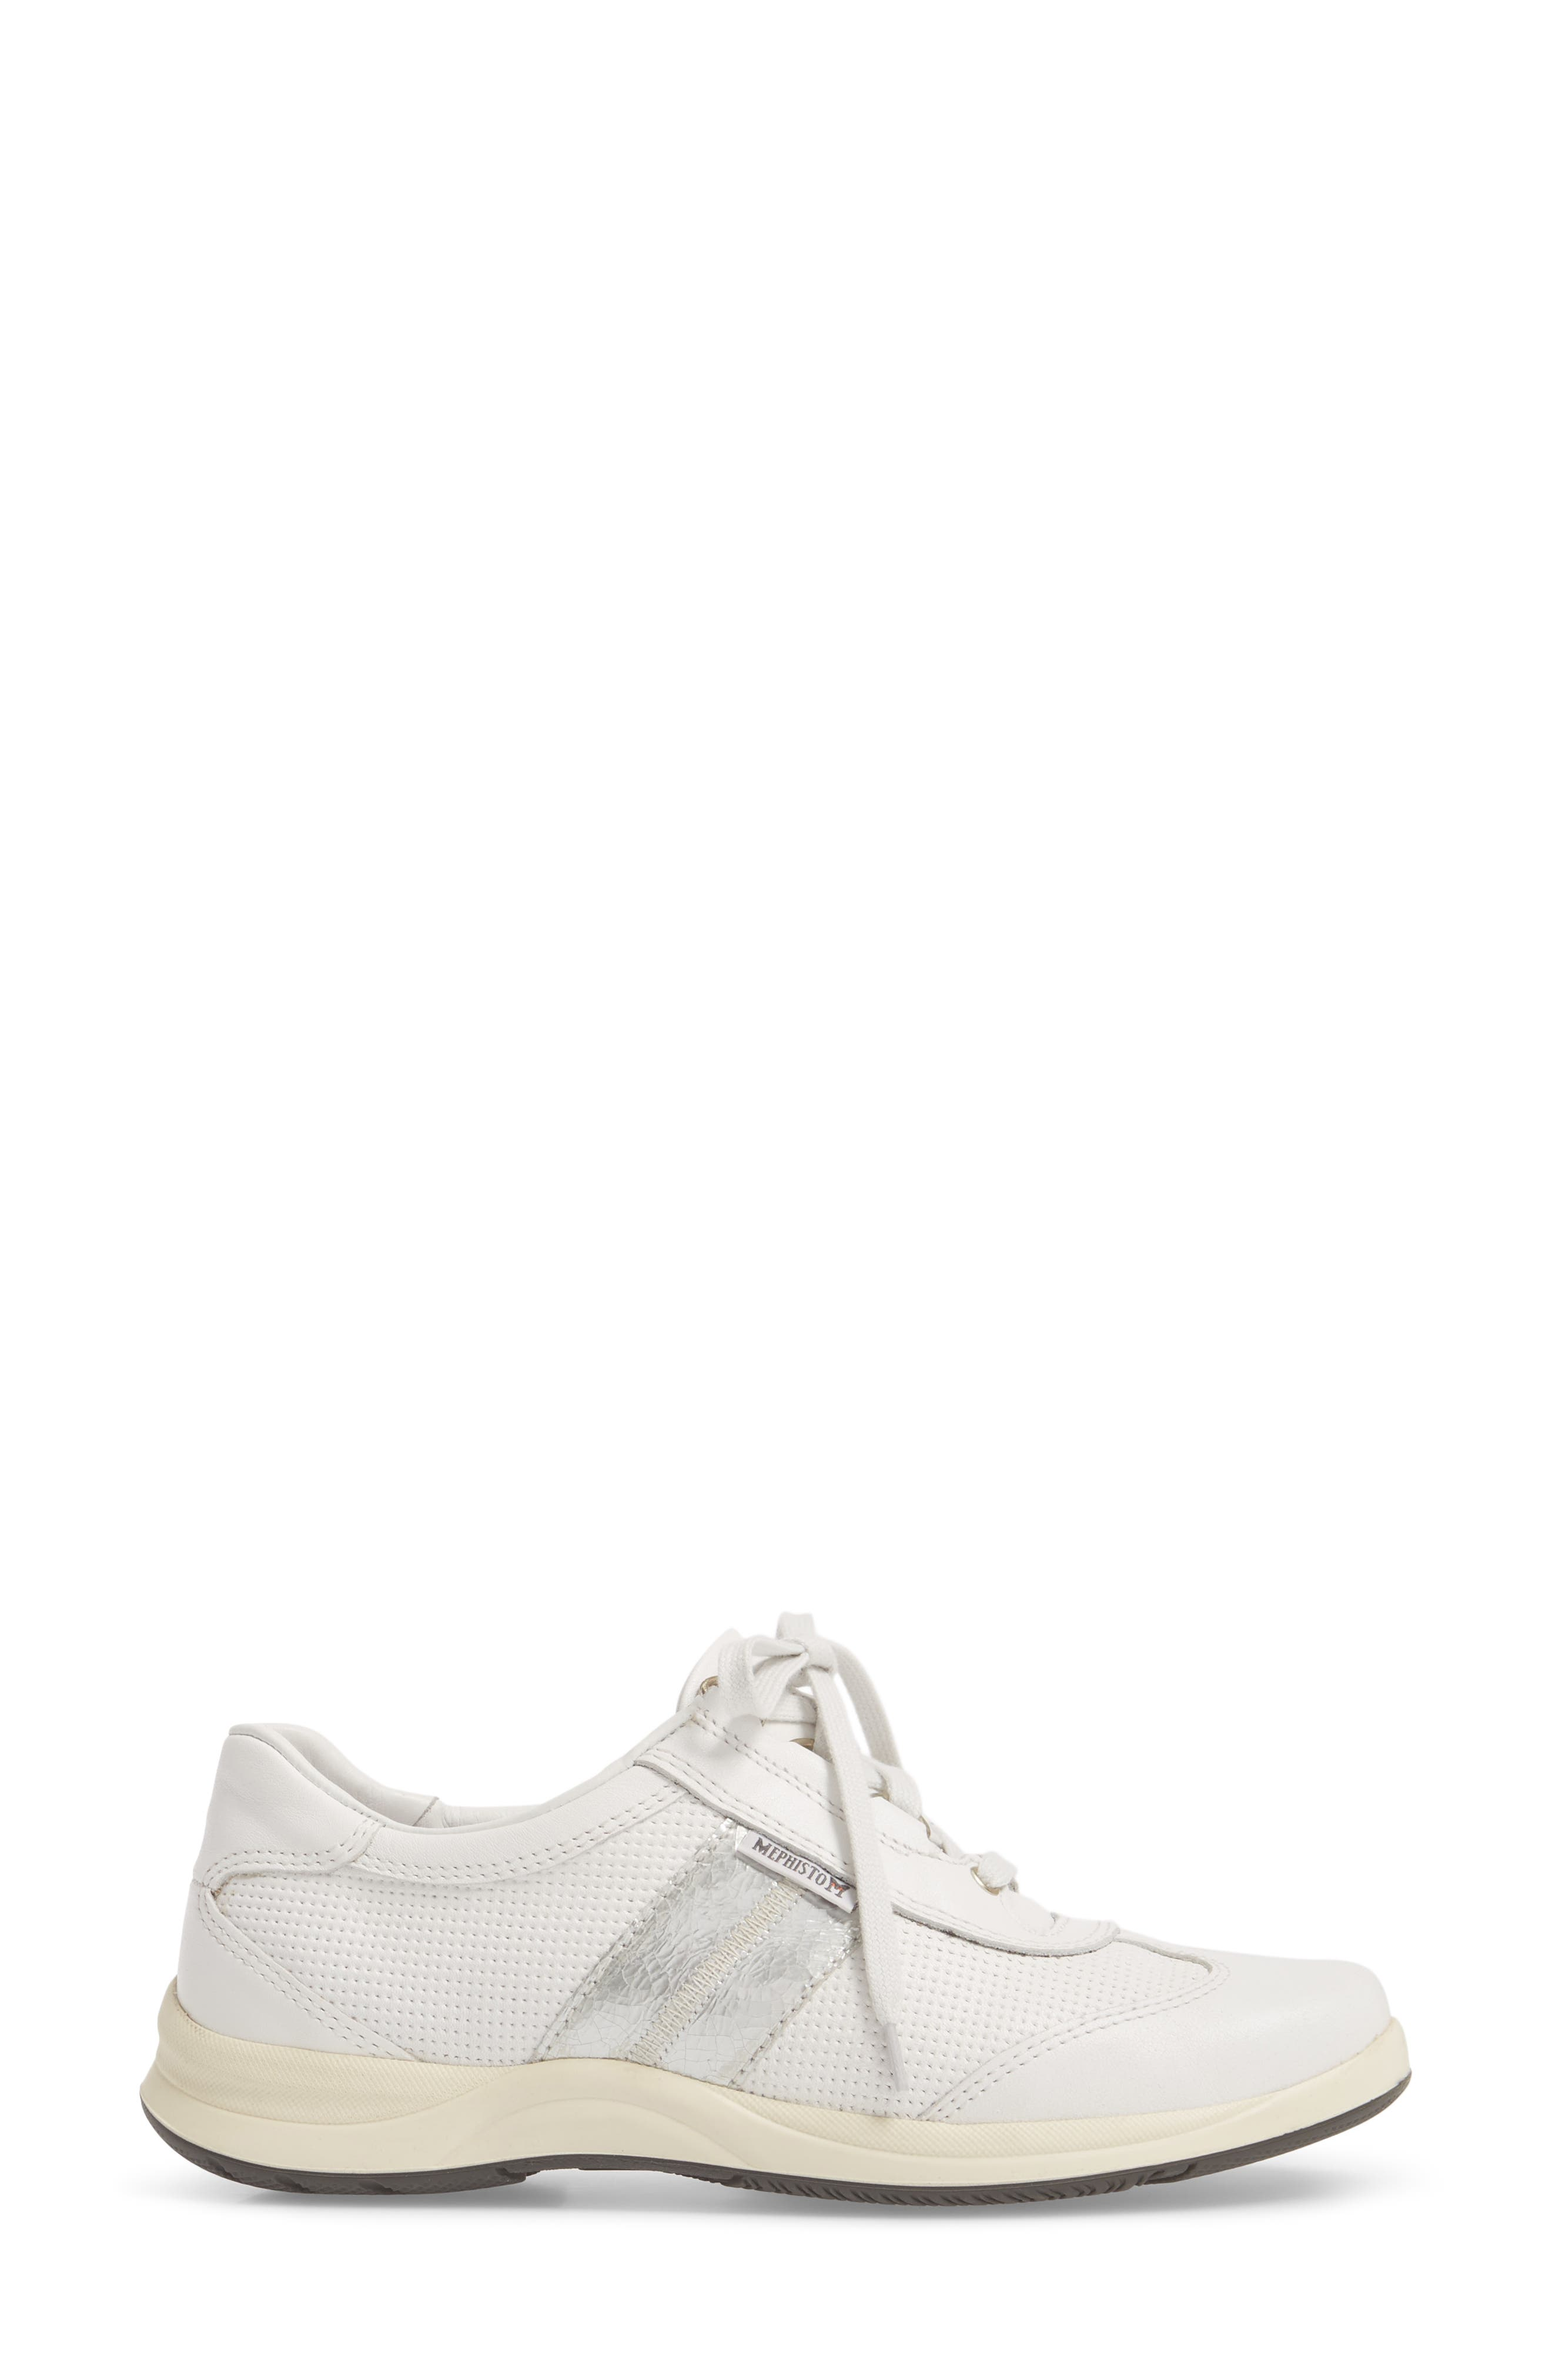 Laser Perforated Walking Shoe,                             Alternate thumbnail 3, color,                             White Fabric